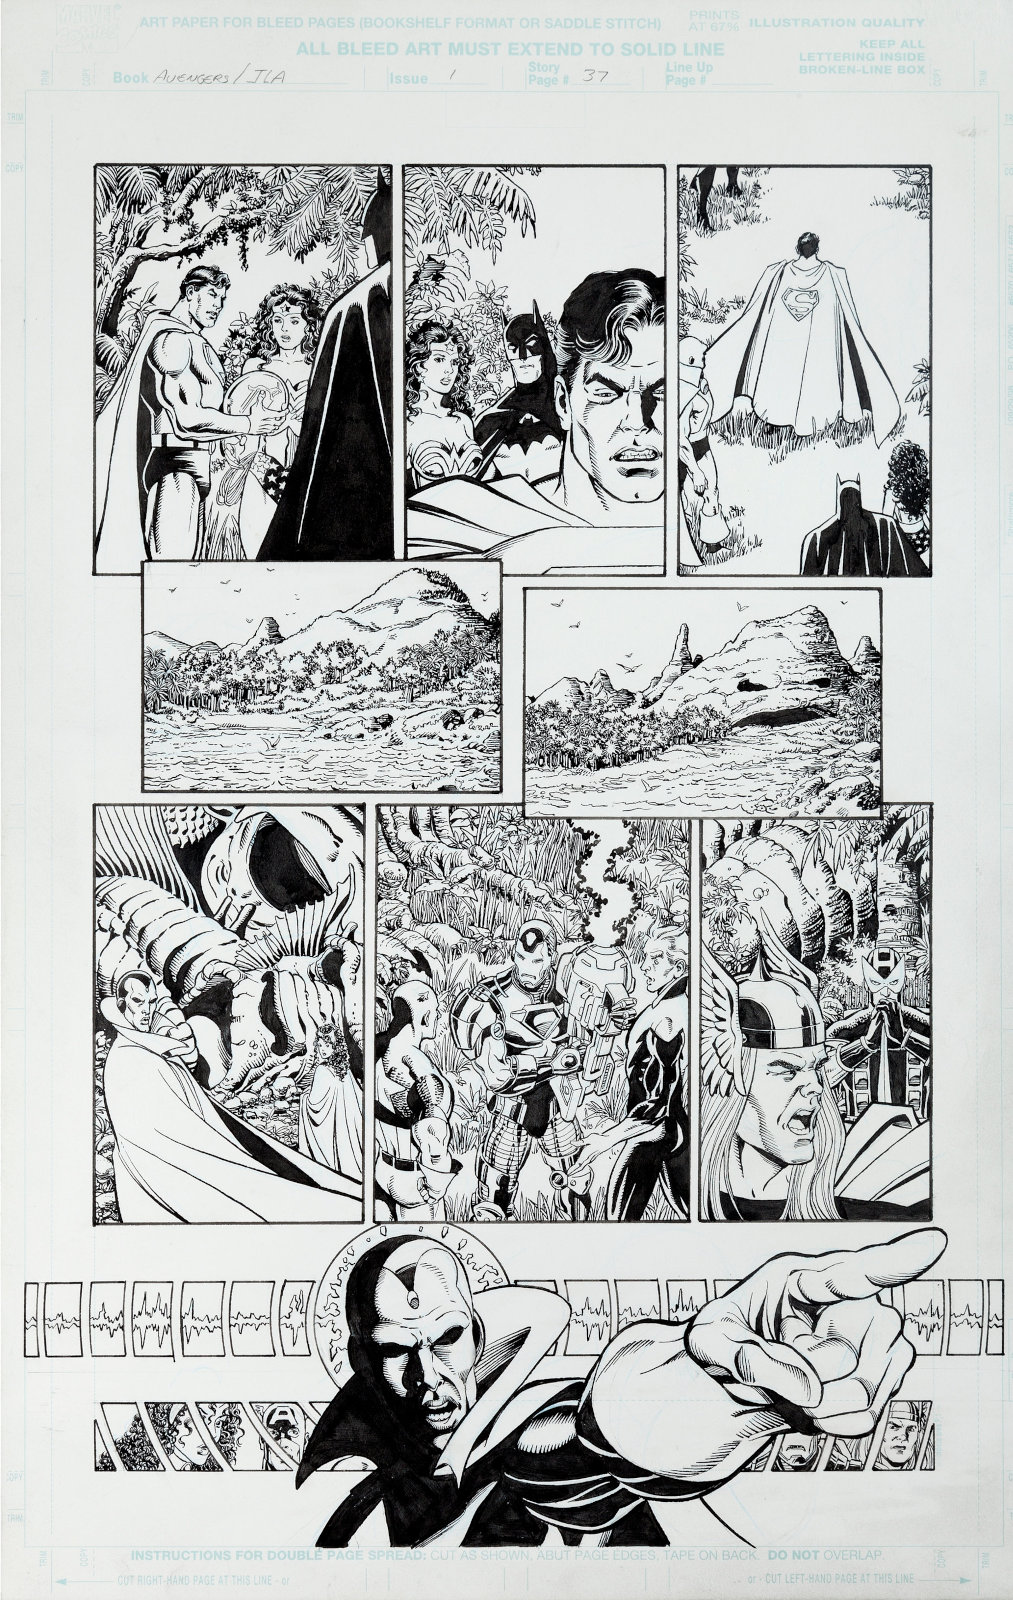 JLA Avengers issue 1 page 37 by George Perez and Tom Smith